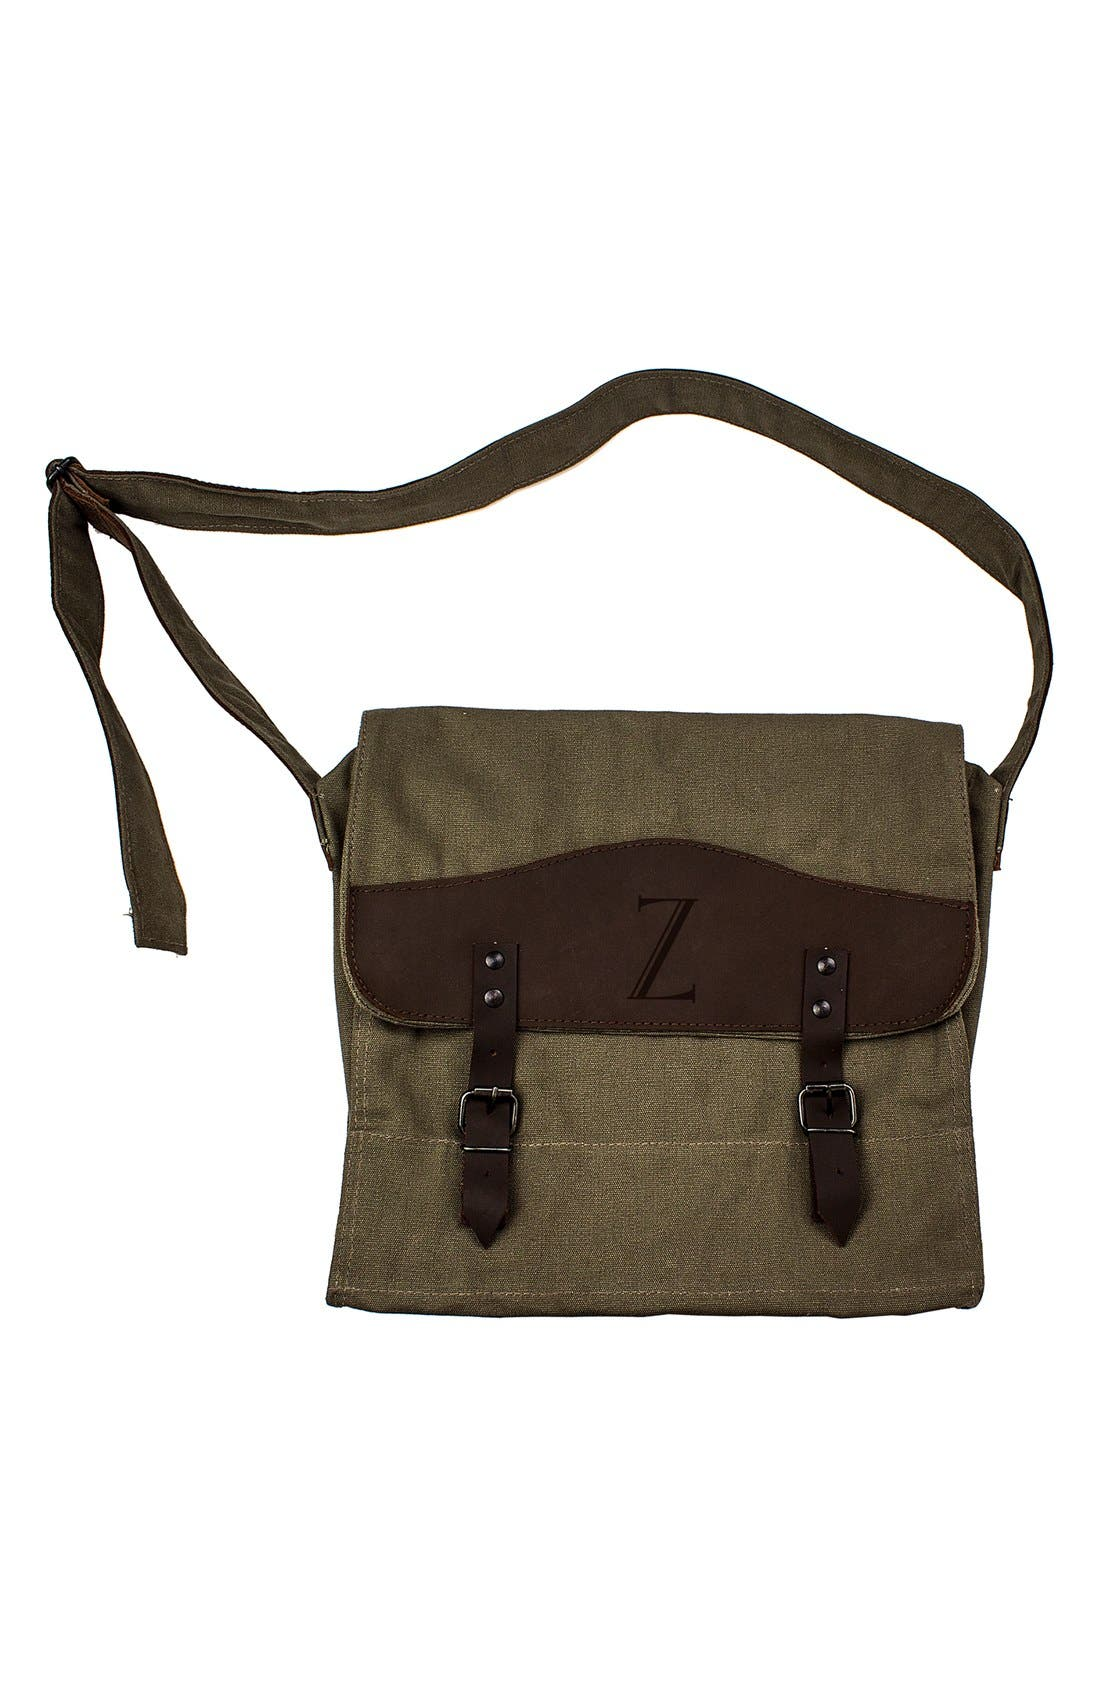 Main Image - Cathy's Concepts Monogram Messenger Bag